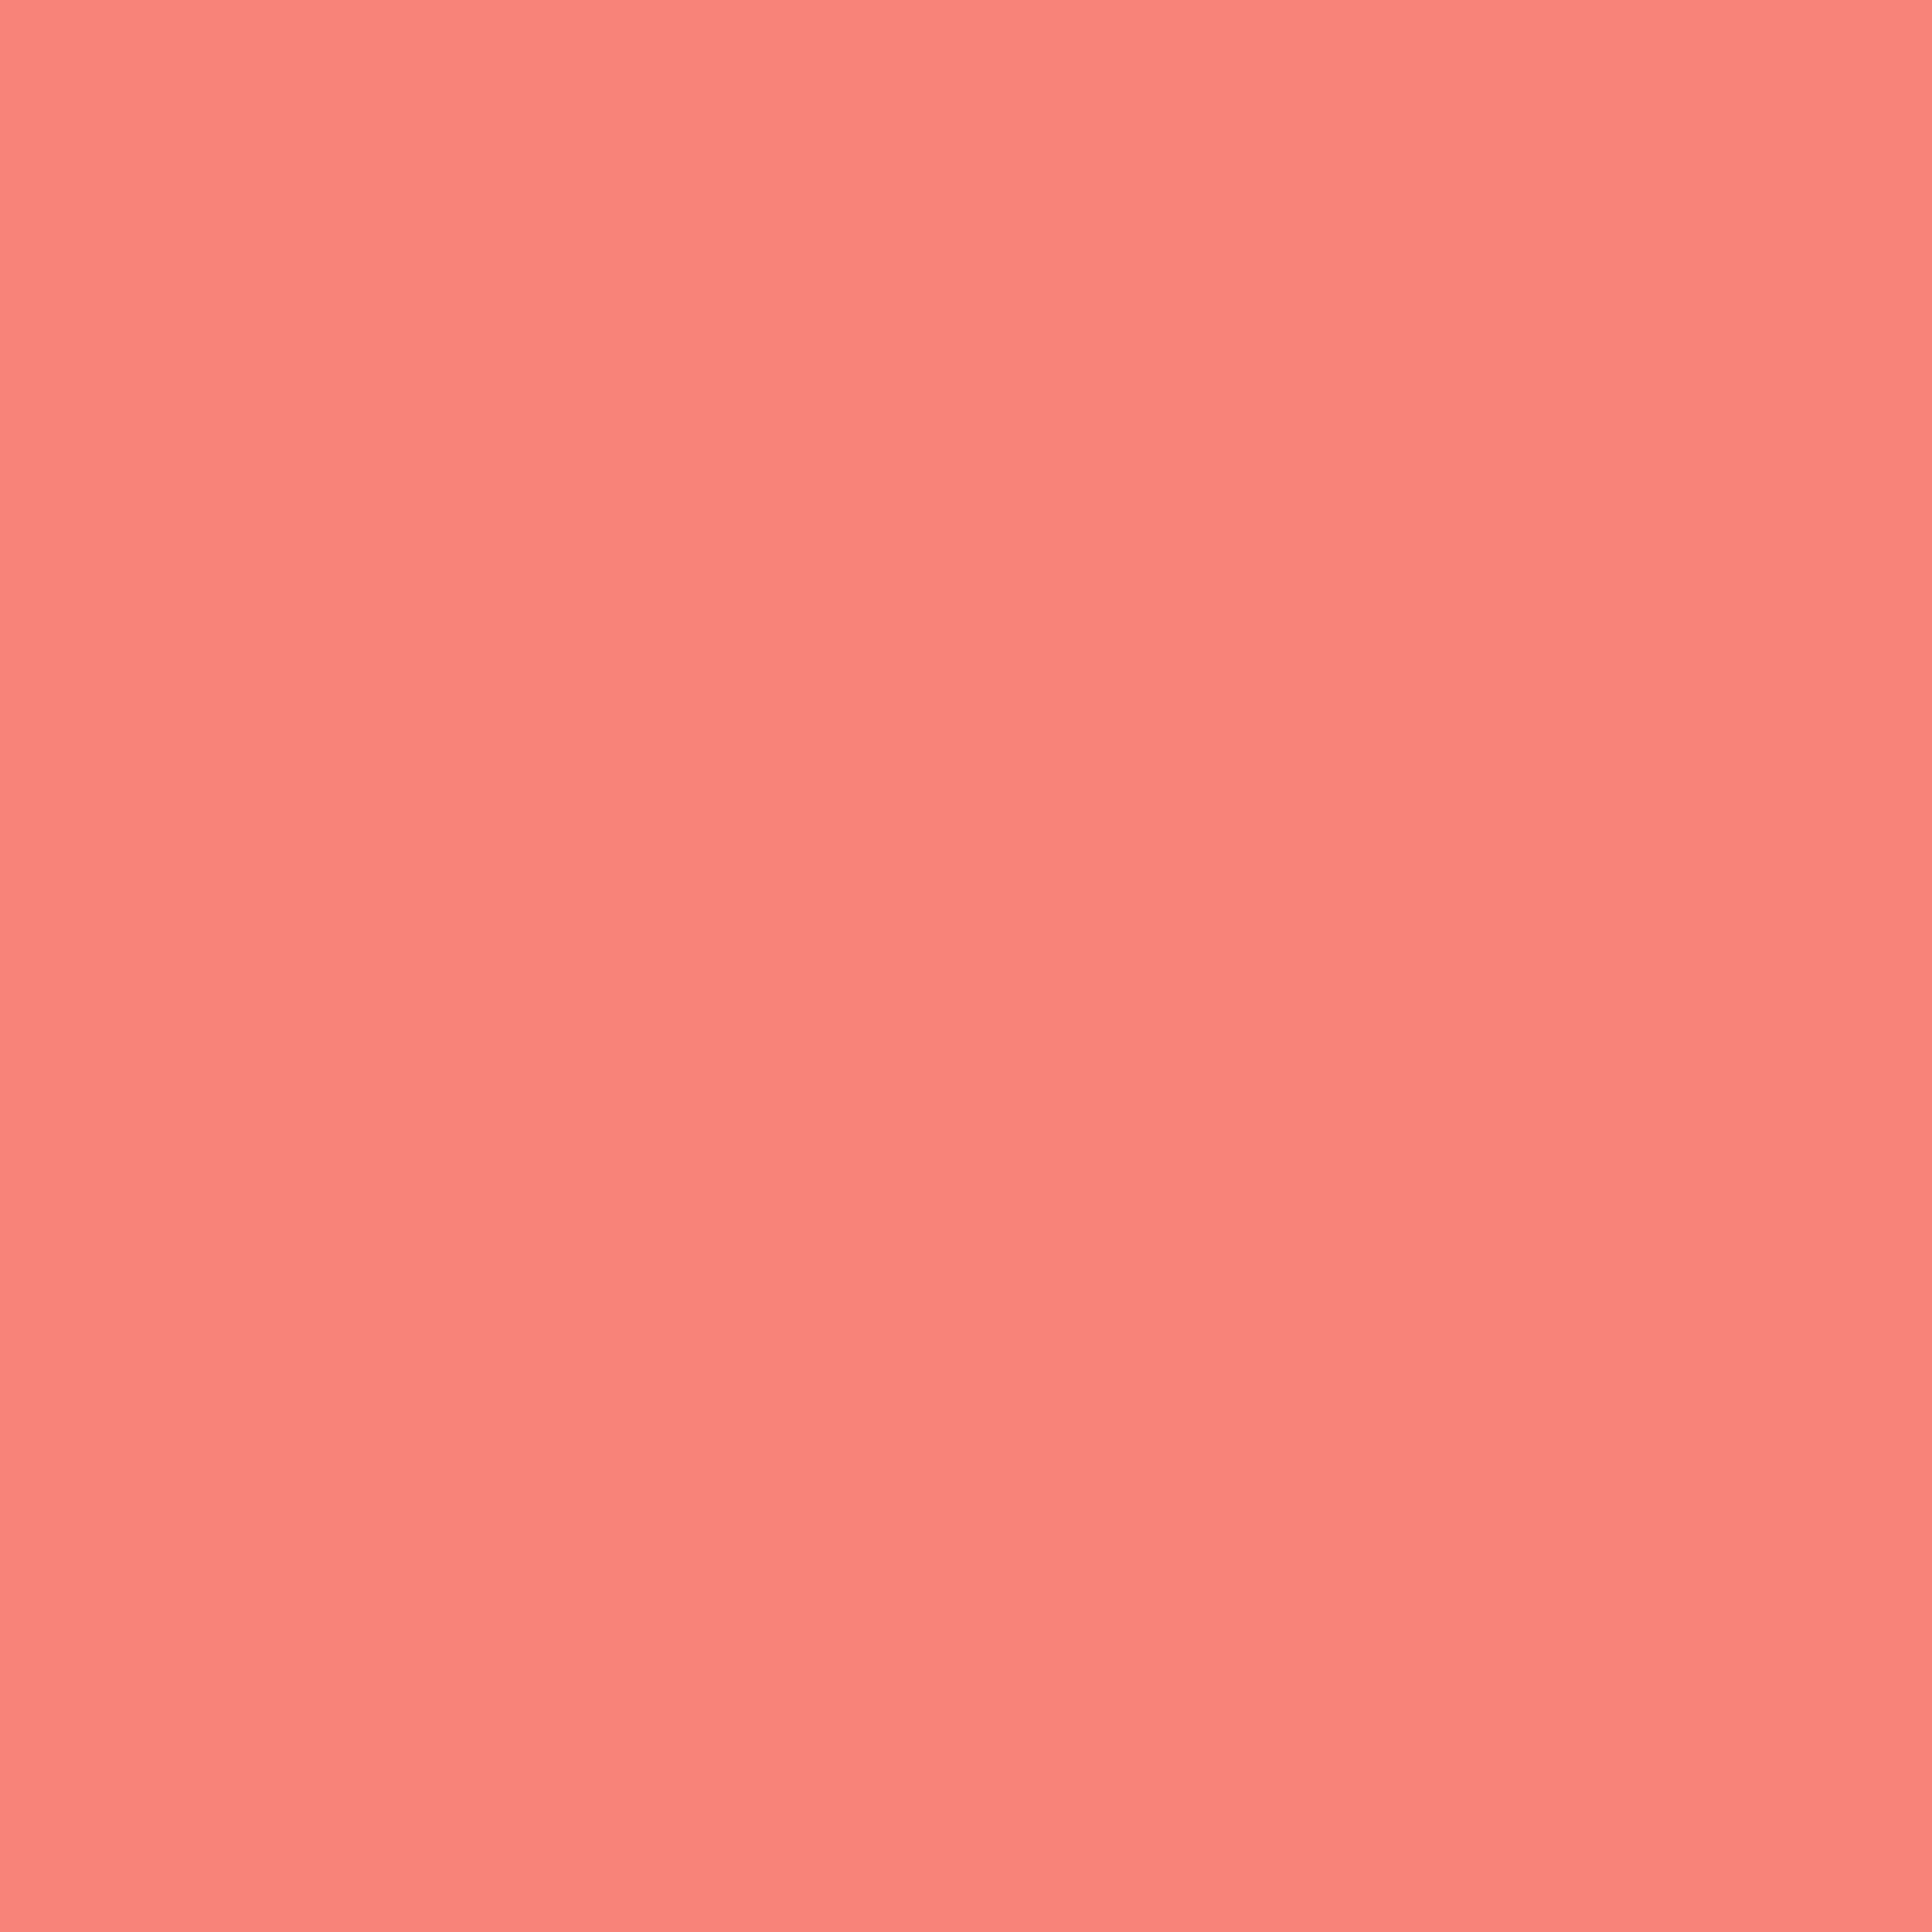 3600x3600 Congo Pink Solid Color Background